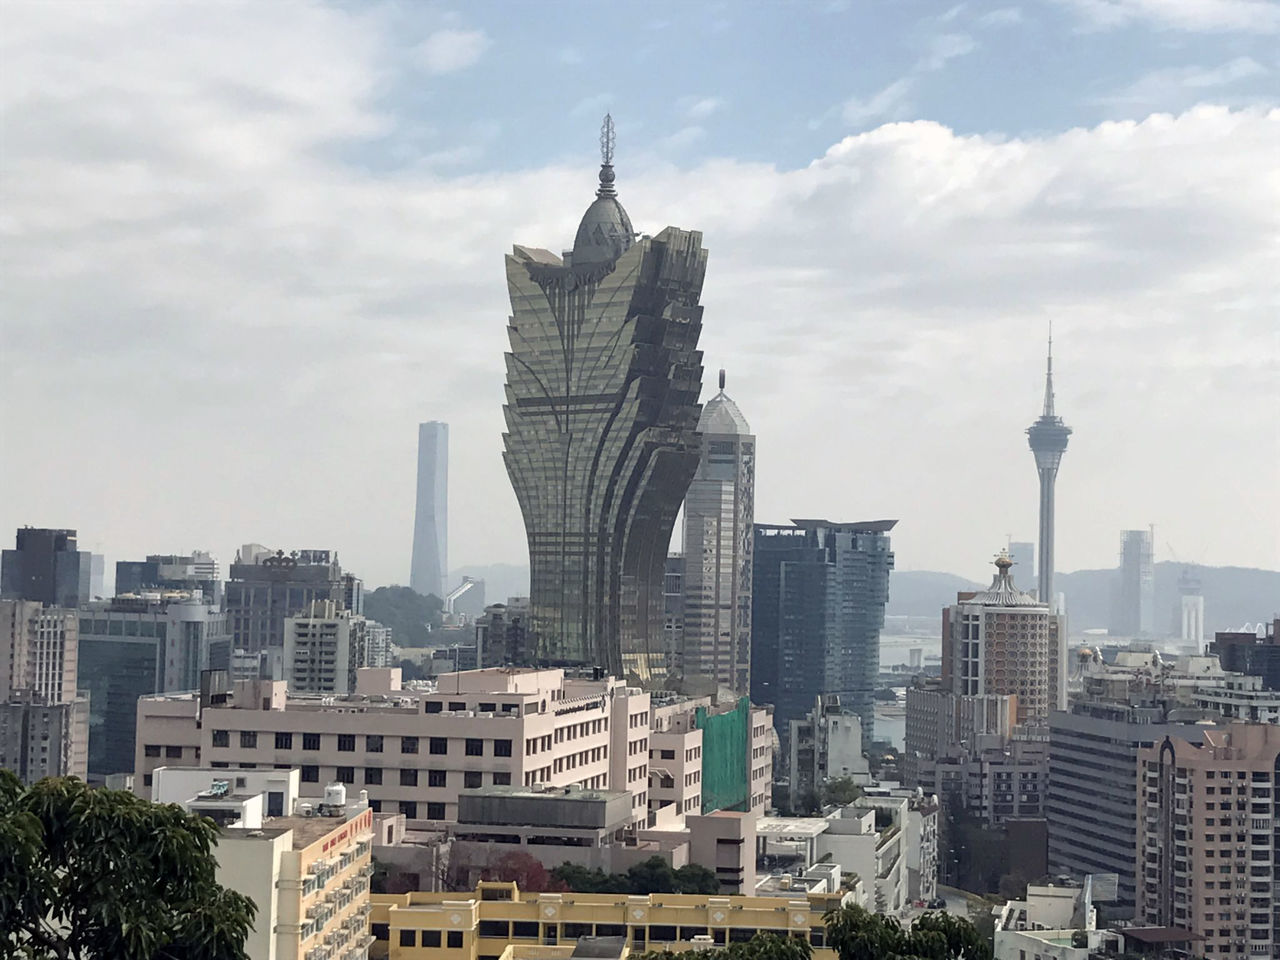 Taken in 02-05-2017 Architecture Building Exterior Built Structure City Cityscape Cloud - Sky Day Macau Modern Neighborhood Map No People Outdoors Sky Skyscraper Tall Tall - High Tower Travel Destinations Tree Urban Skyline